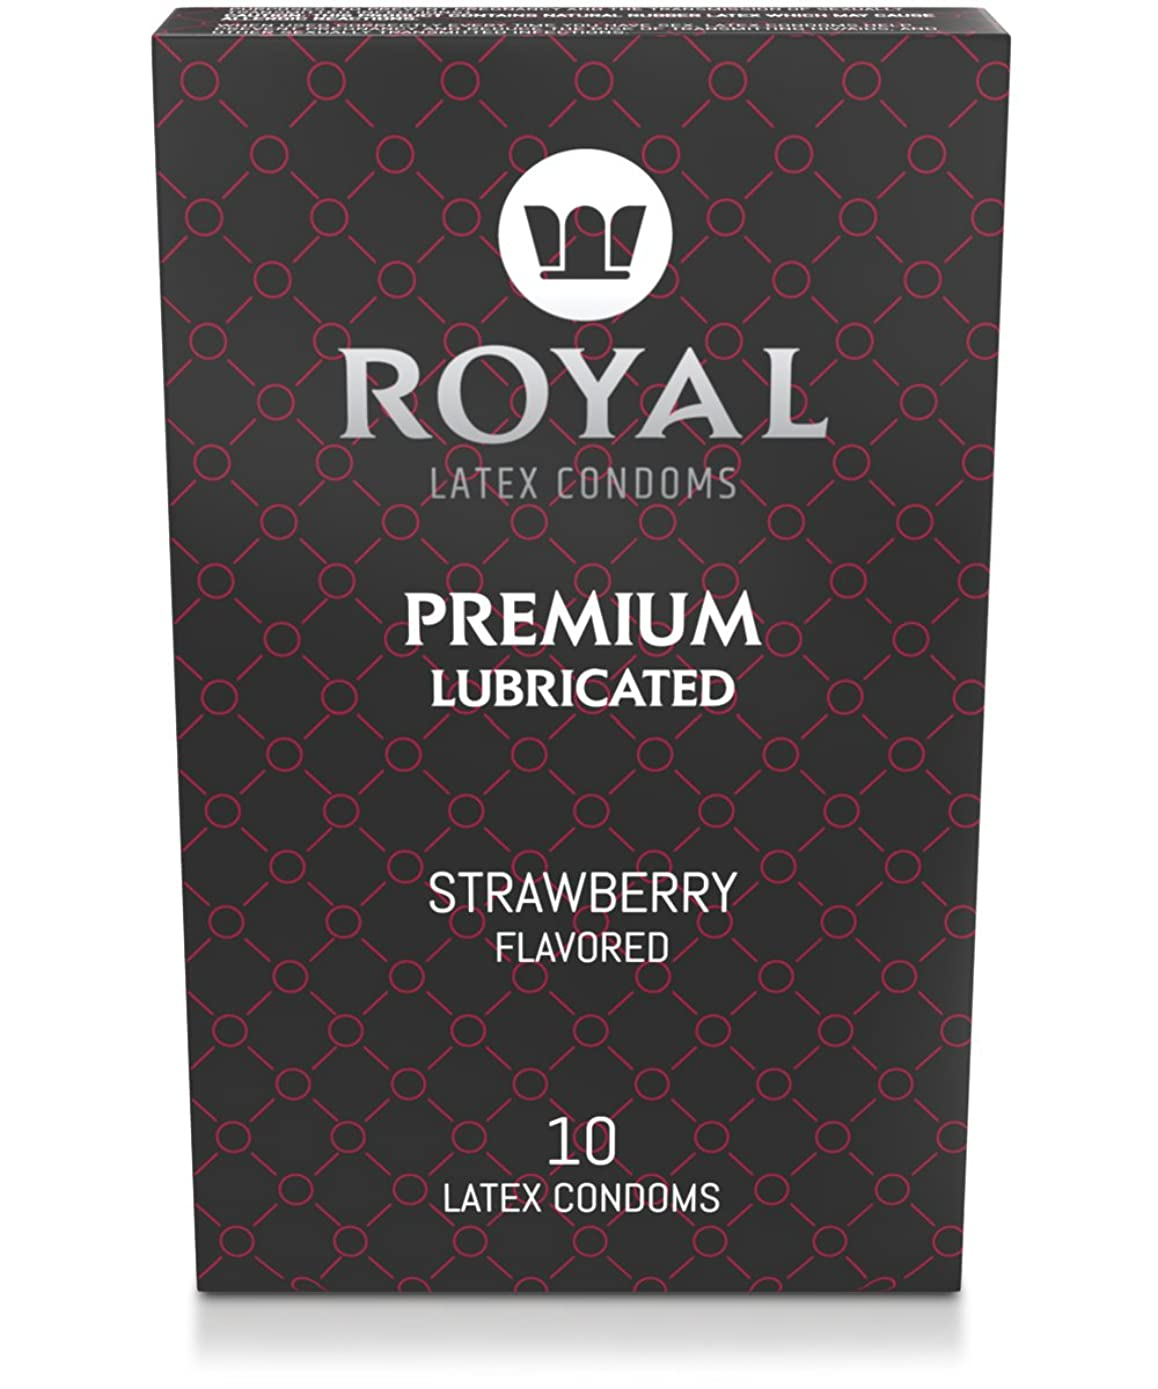 Royal Premium Strawberry Flavored and Scented Condoms - Ultra Thin, Lubricated, High Quality Non-Toxic Vegan Latex and Odor Free for Long Lasting Extended Pleasure and Performance, 10 Pack